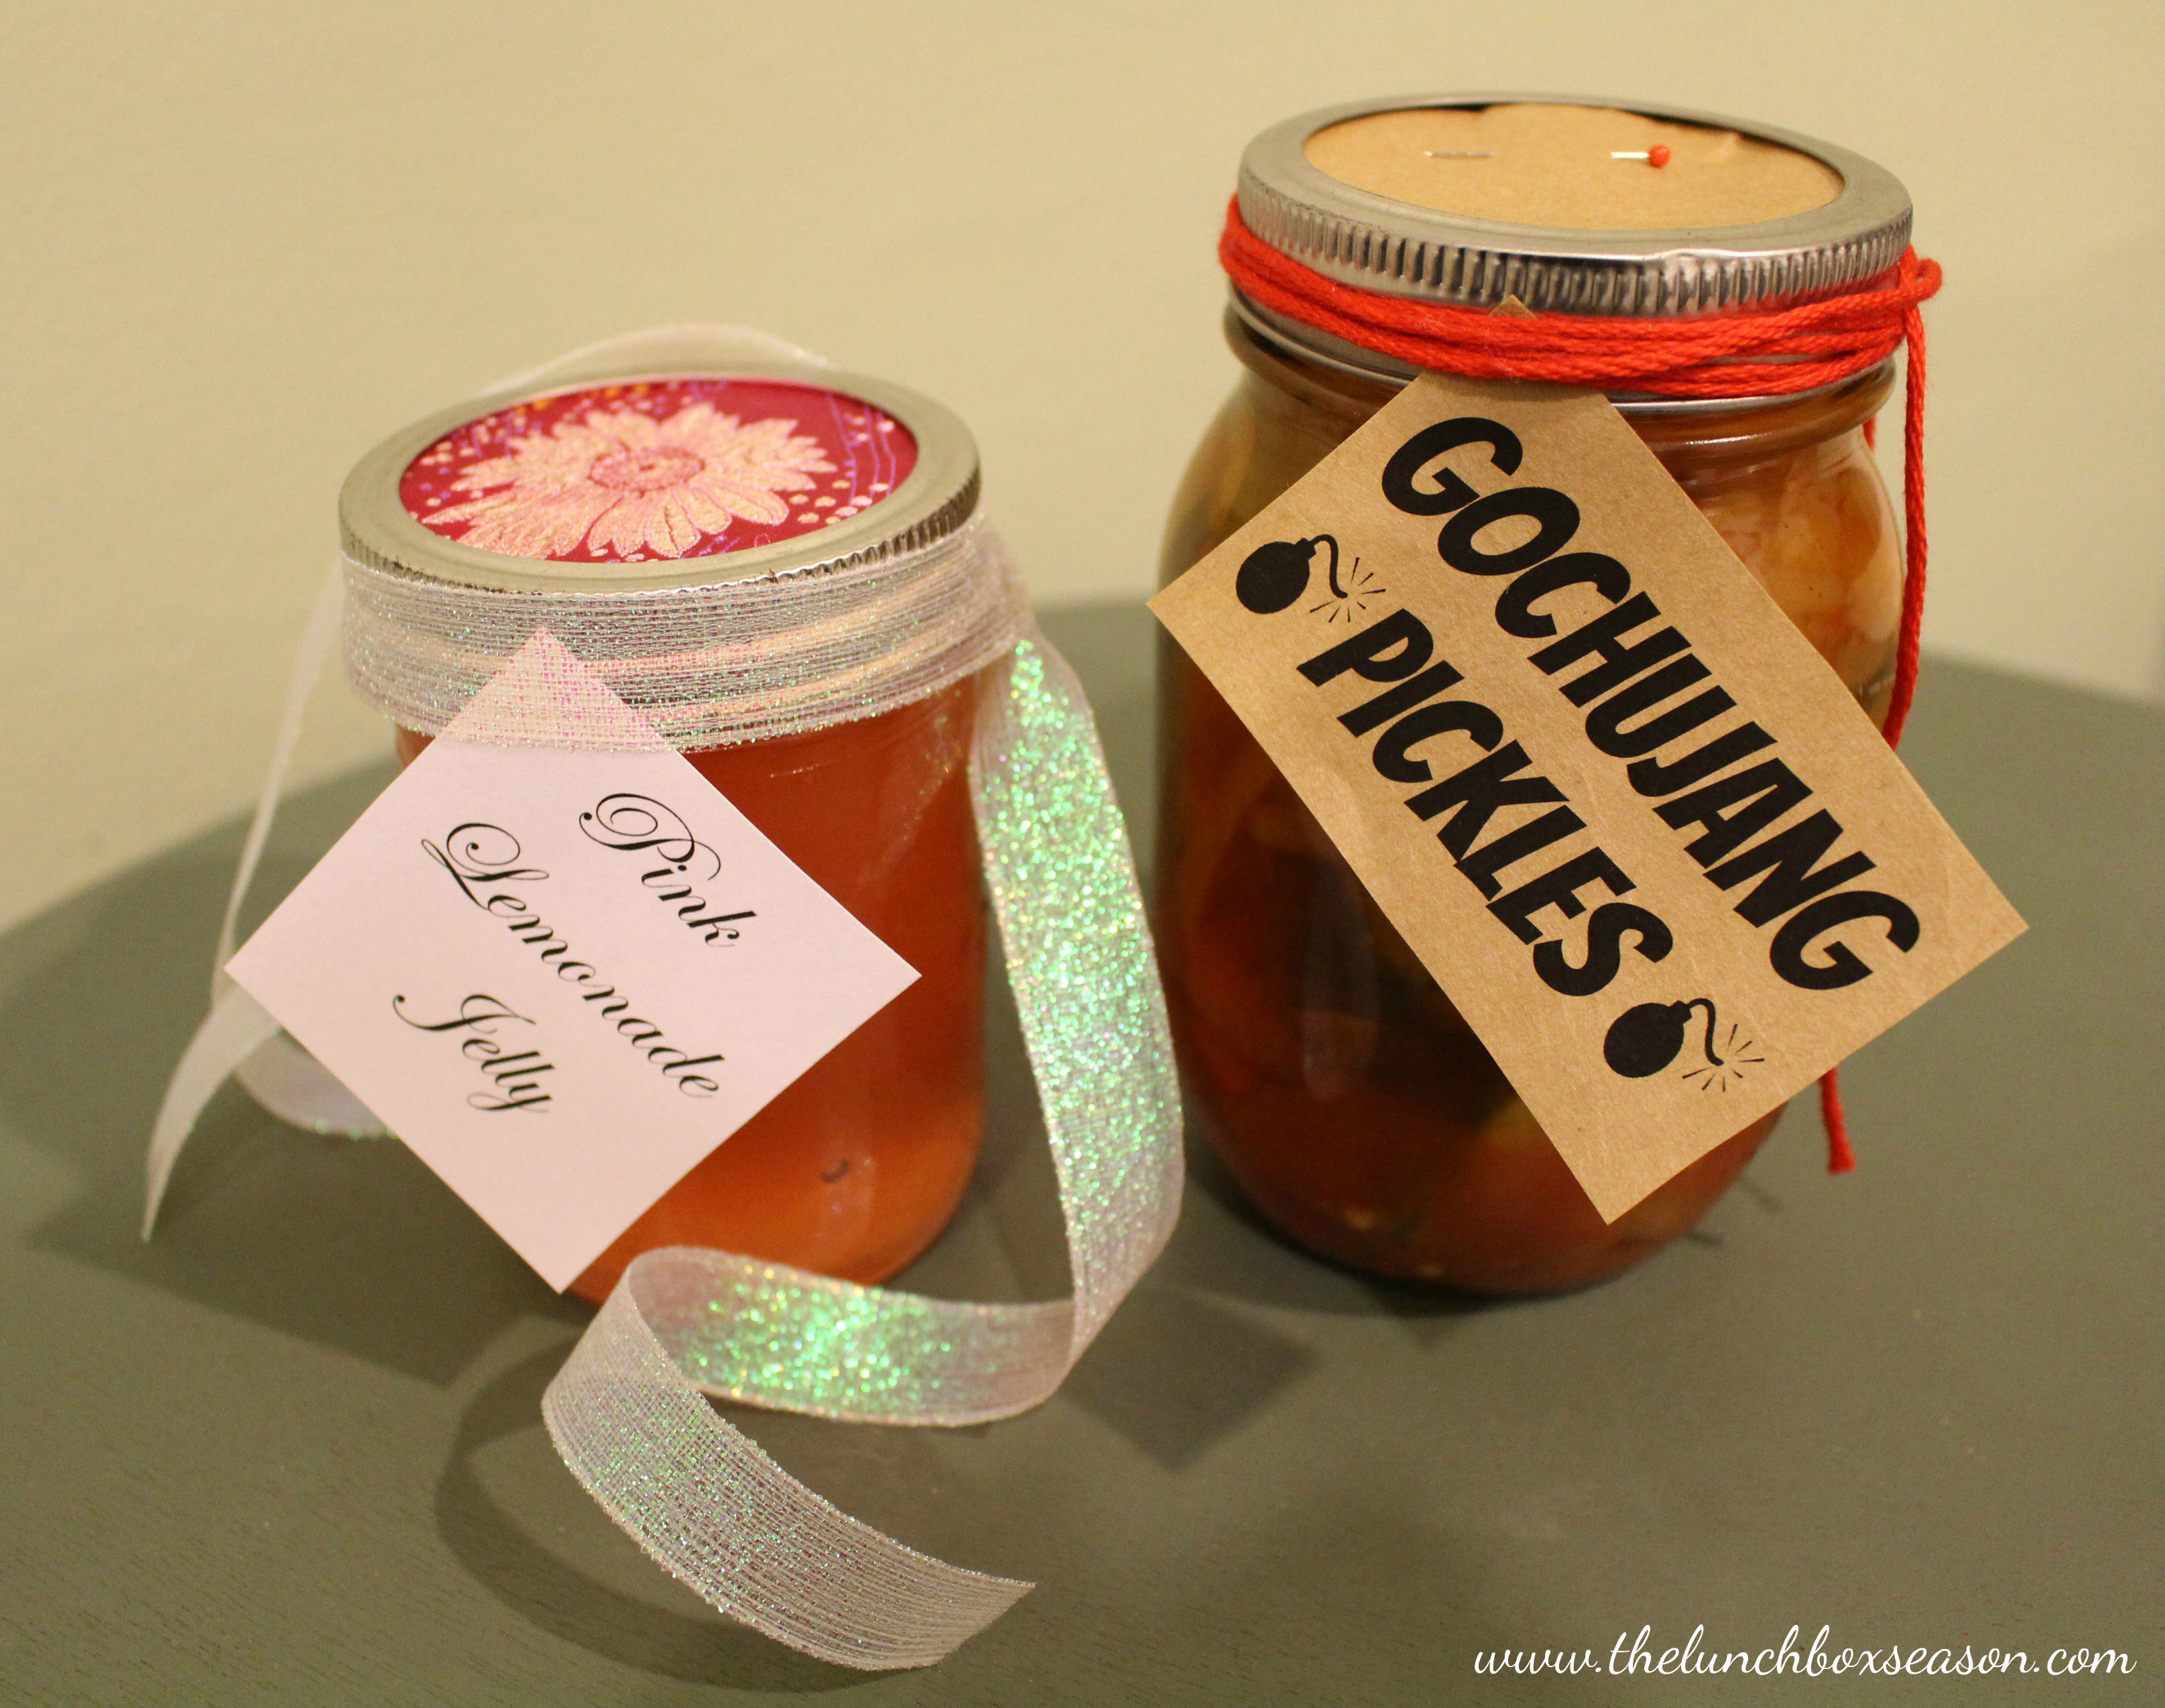 Pink lemonade jelly and gochujang pickles all dressed up for giving from The Lunchbox Season dot com